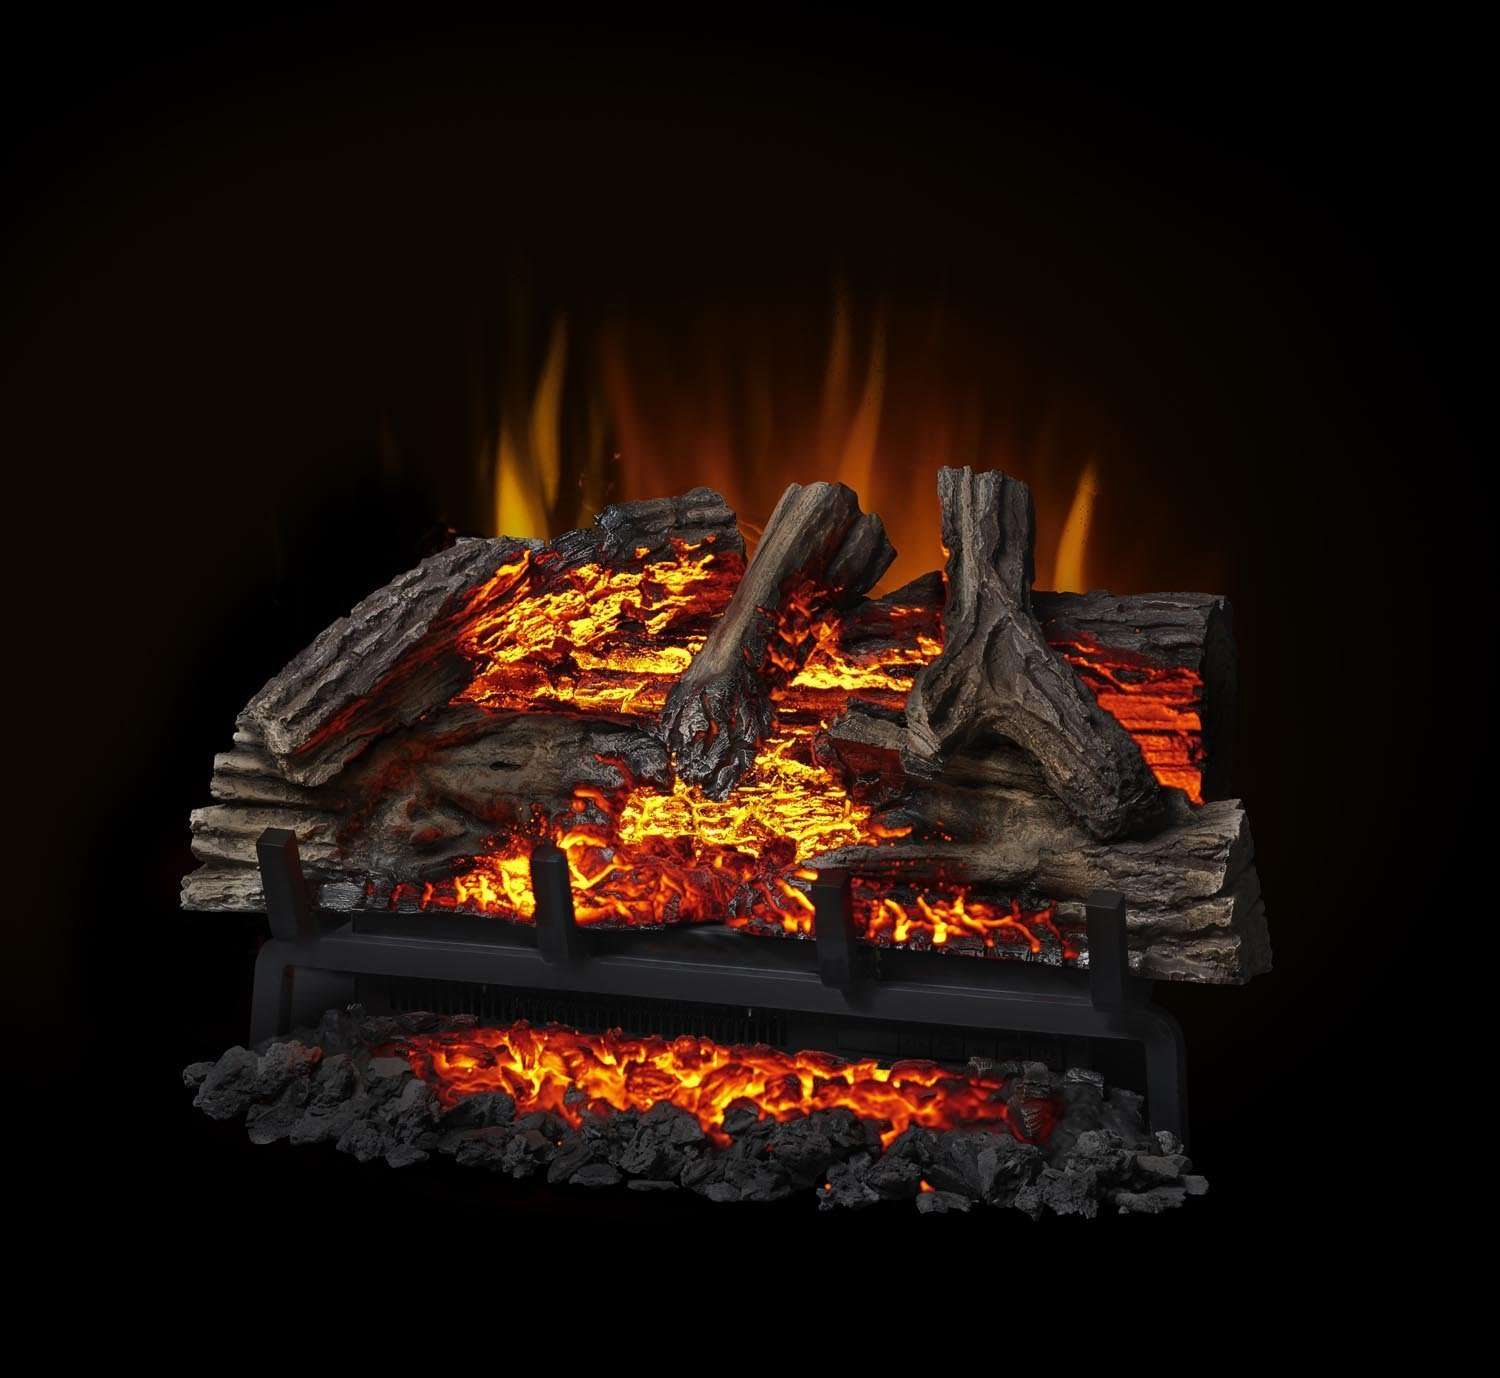 Amazon.com: Napoleon Woodland Electric Fireplace Log Set: Home & Kitchen